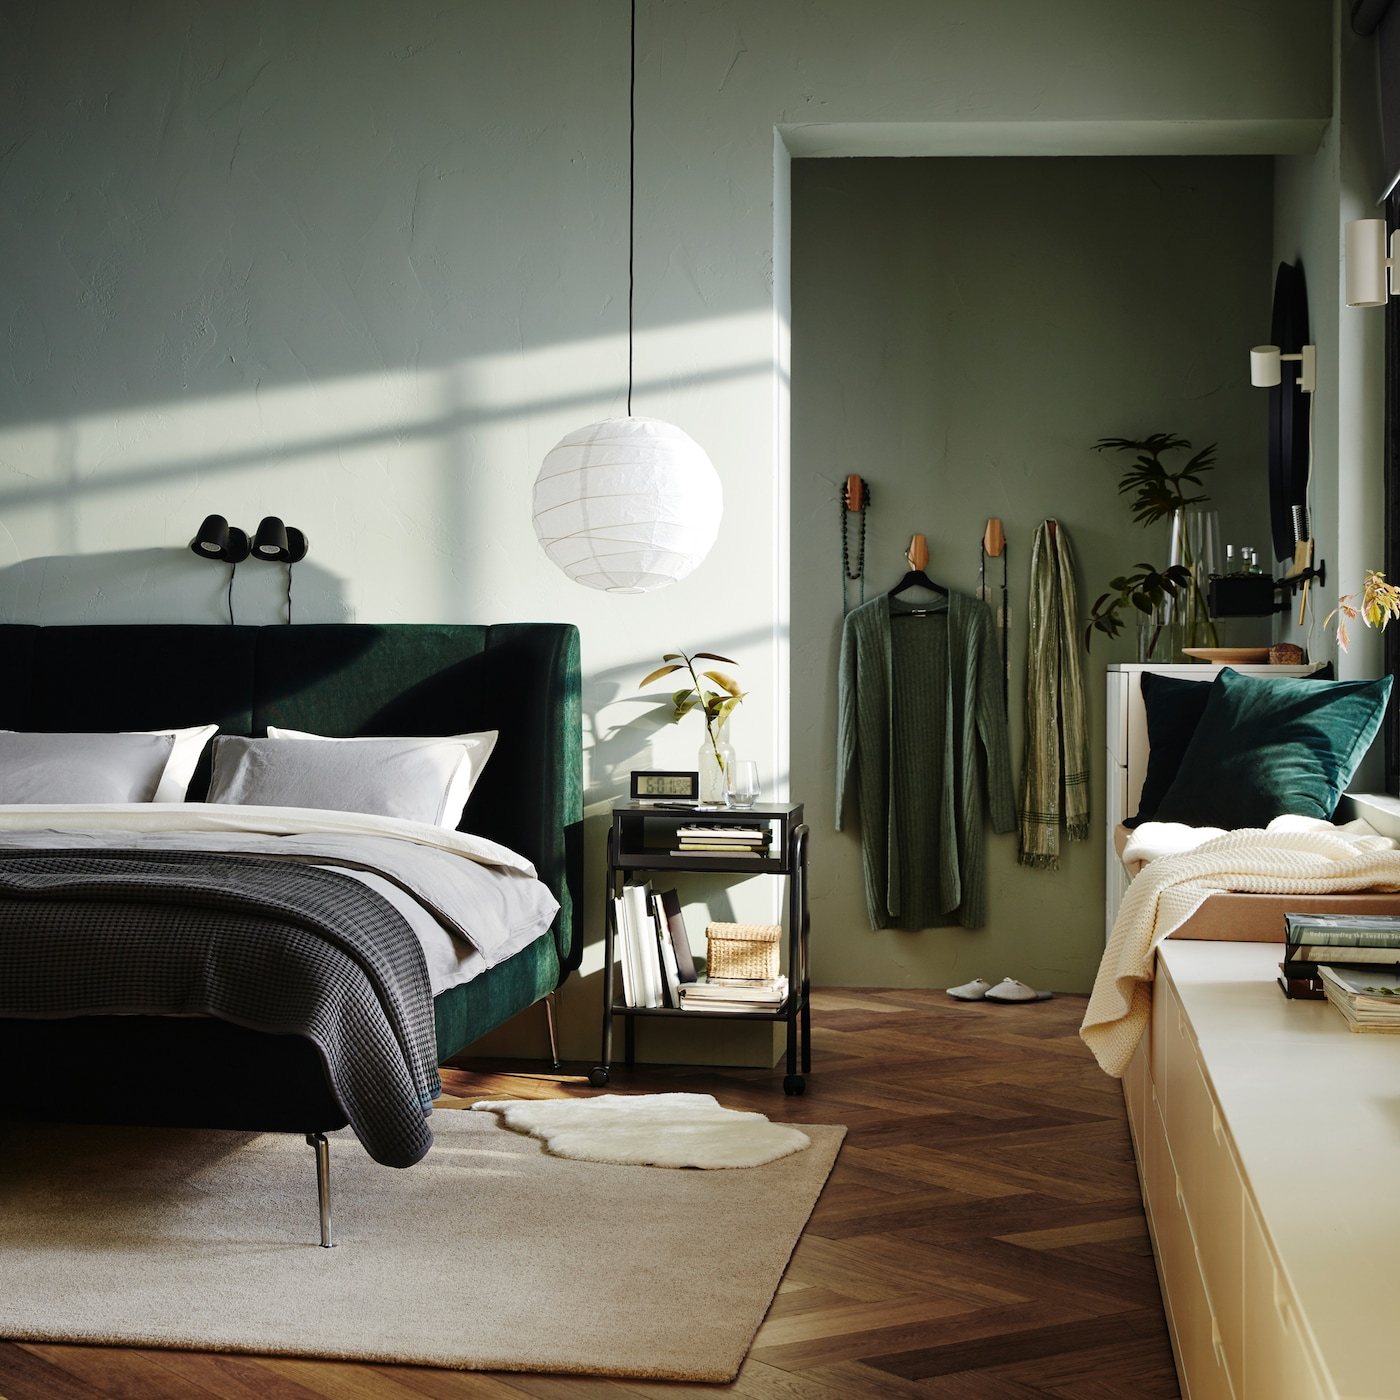 A bedroom with a green upholstered bed frame, two black wall lamps, an off-white rug and a white chest of drawers.